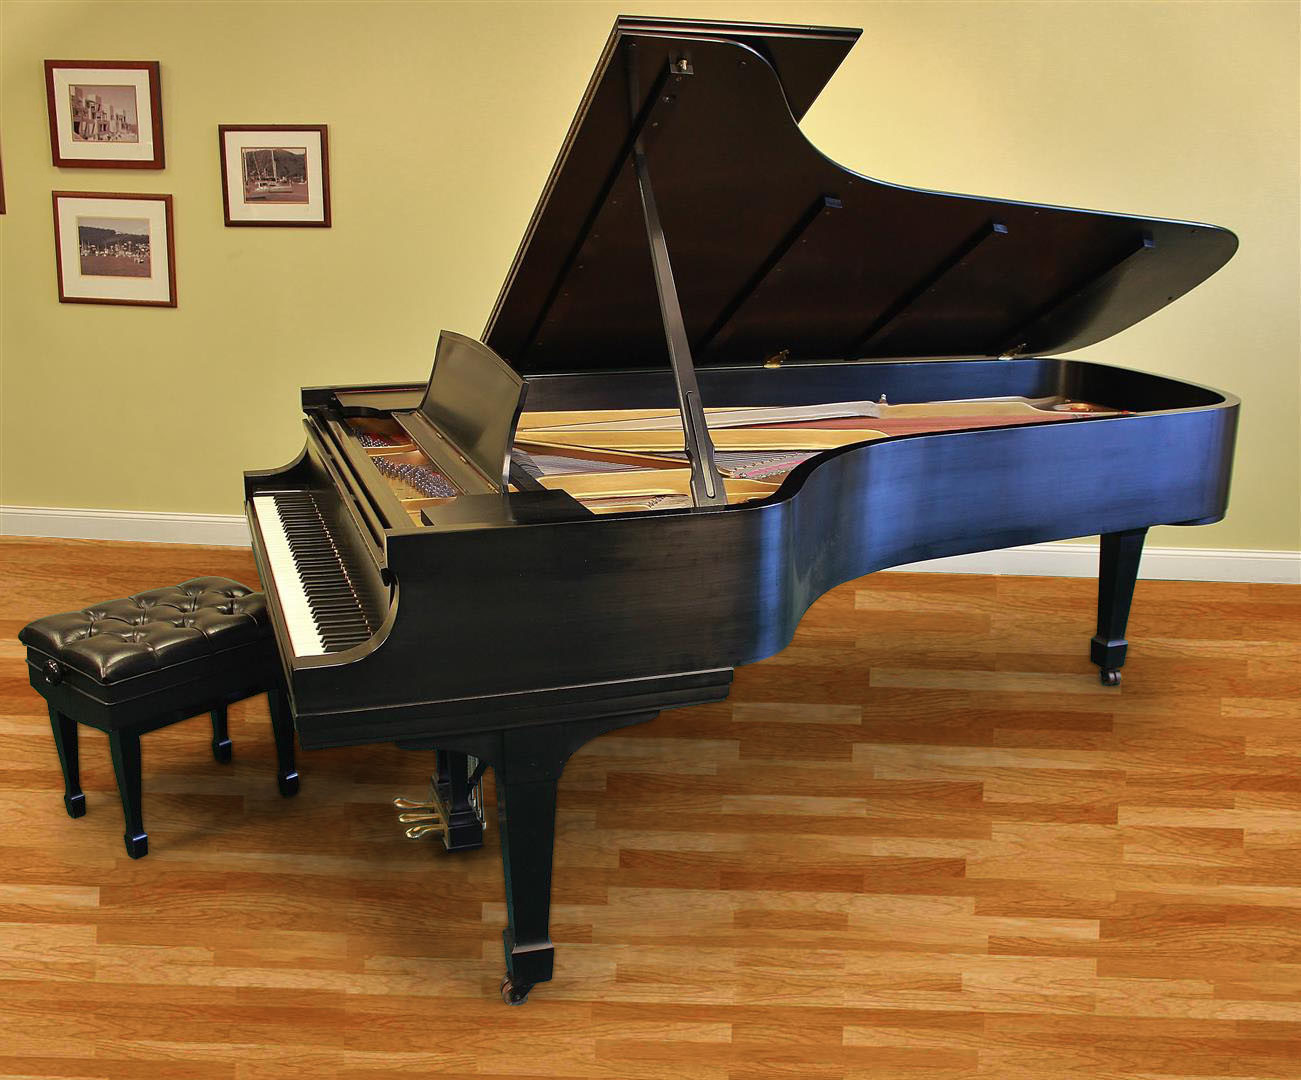 1000 images about steinway on pinterest grand pianos piano and concerts. Black Bedroom Furniture Sets. Home Design Ideas